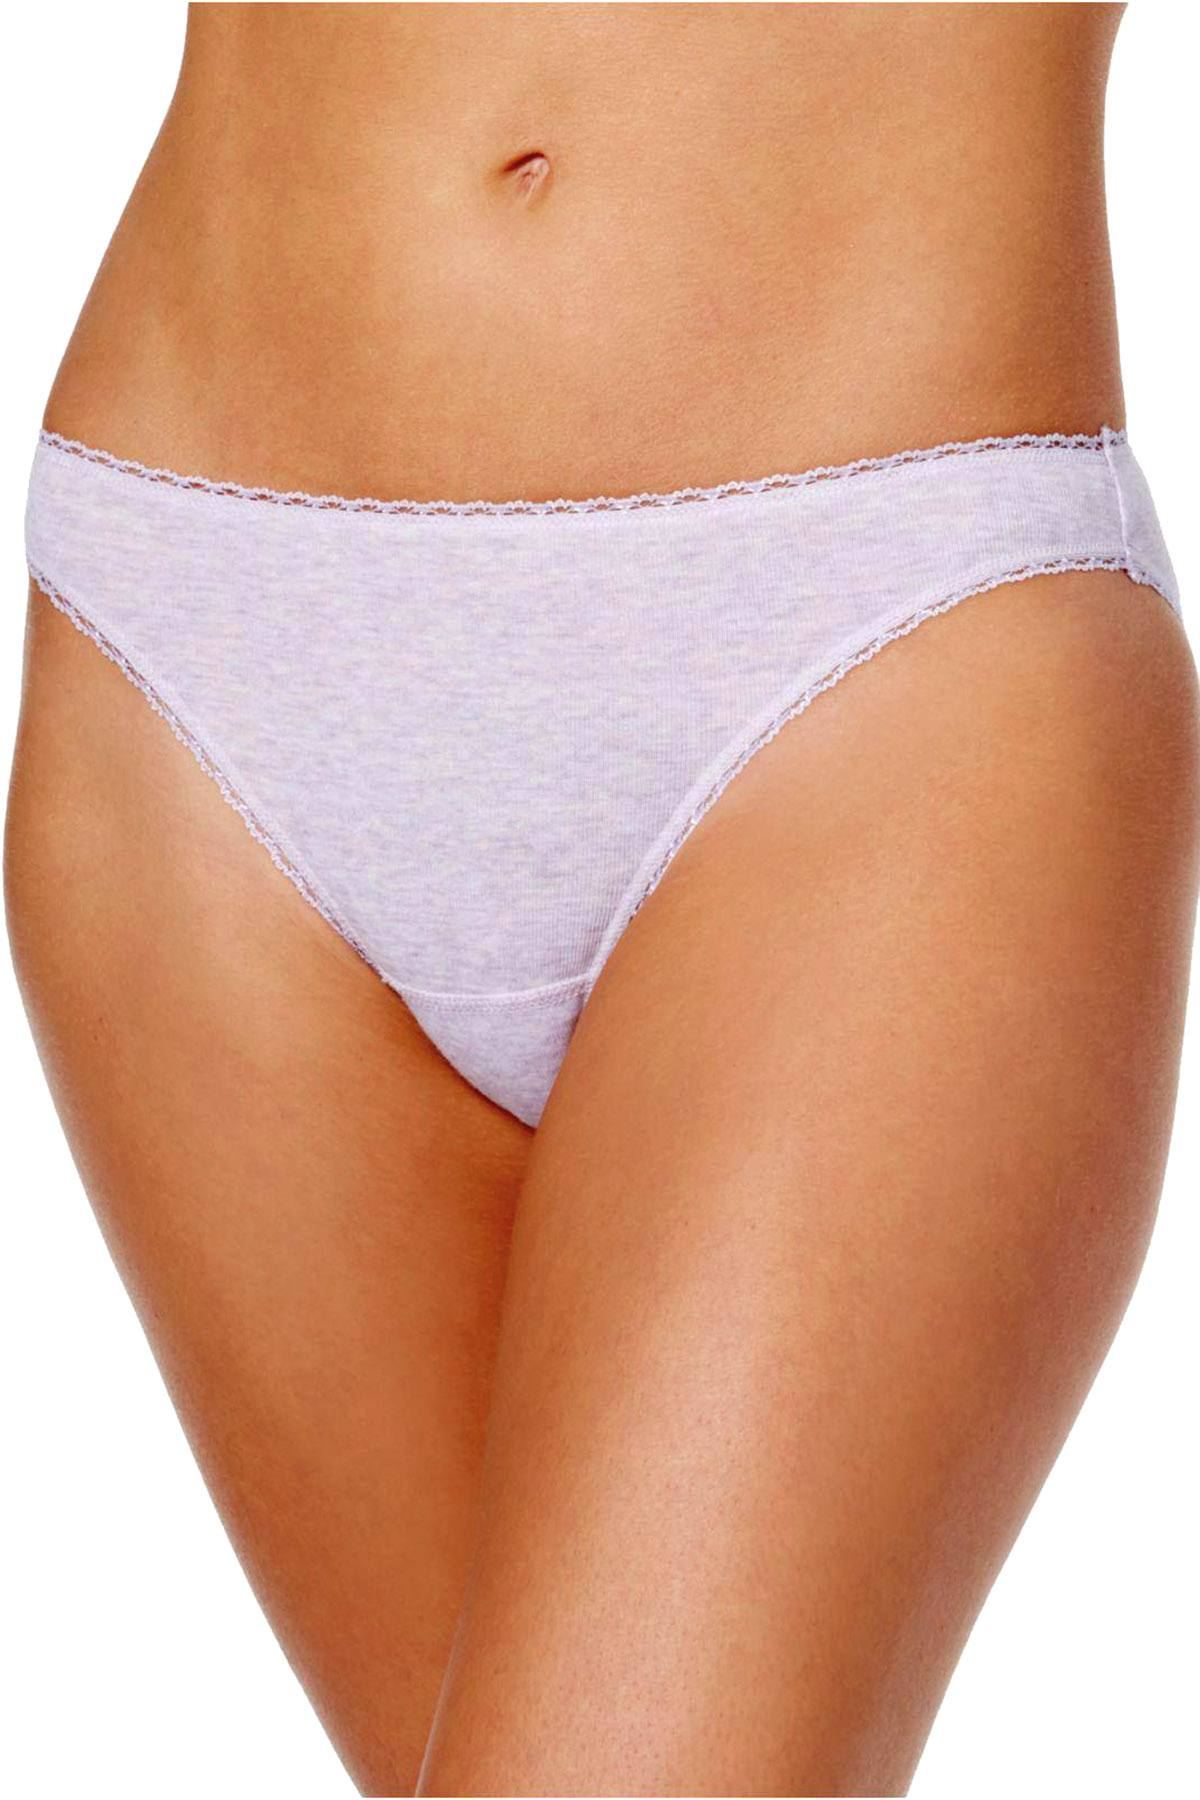 Charter Club Pretty Cotton Bikini Brief in Lilac Heather